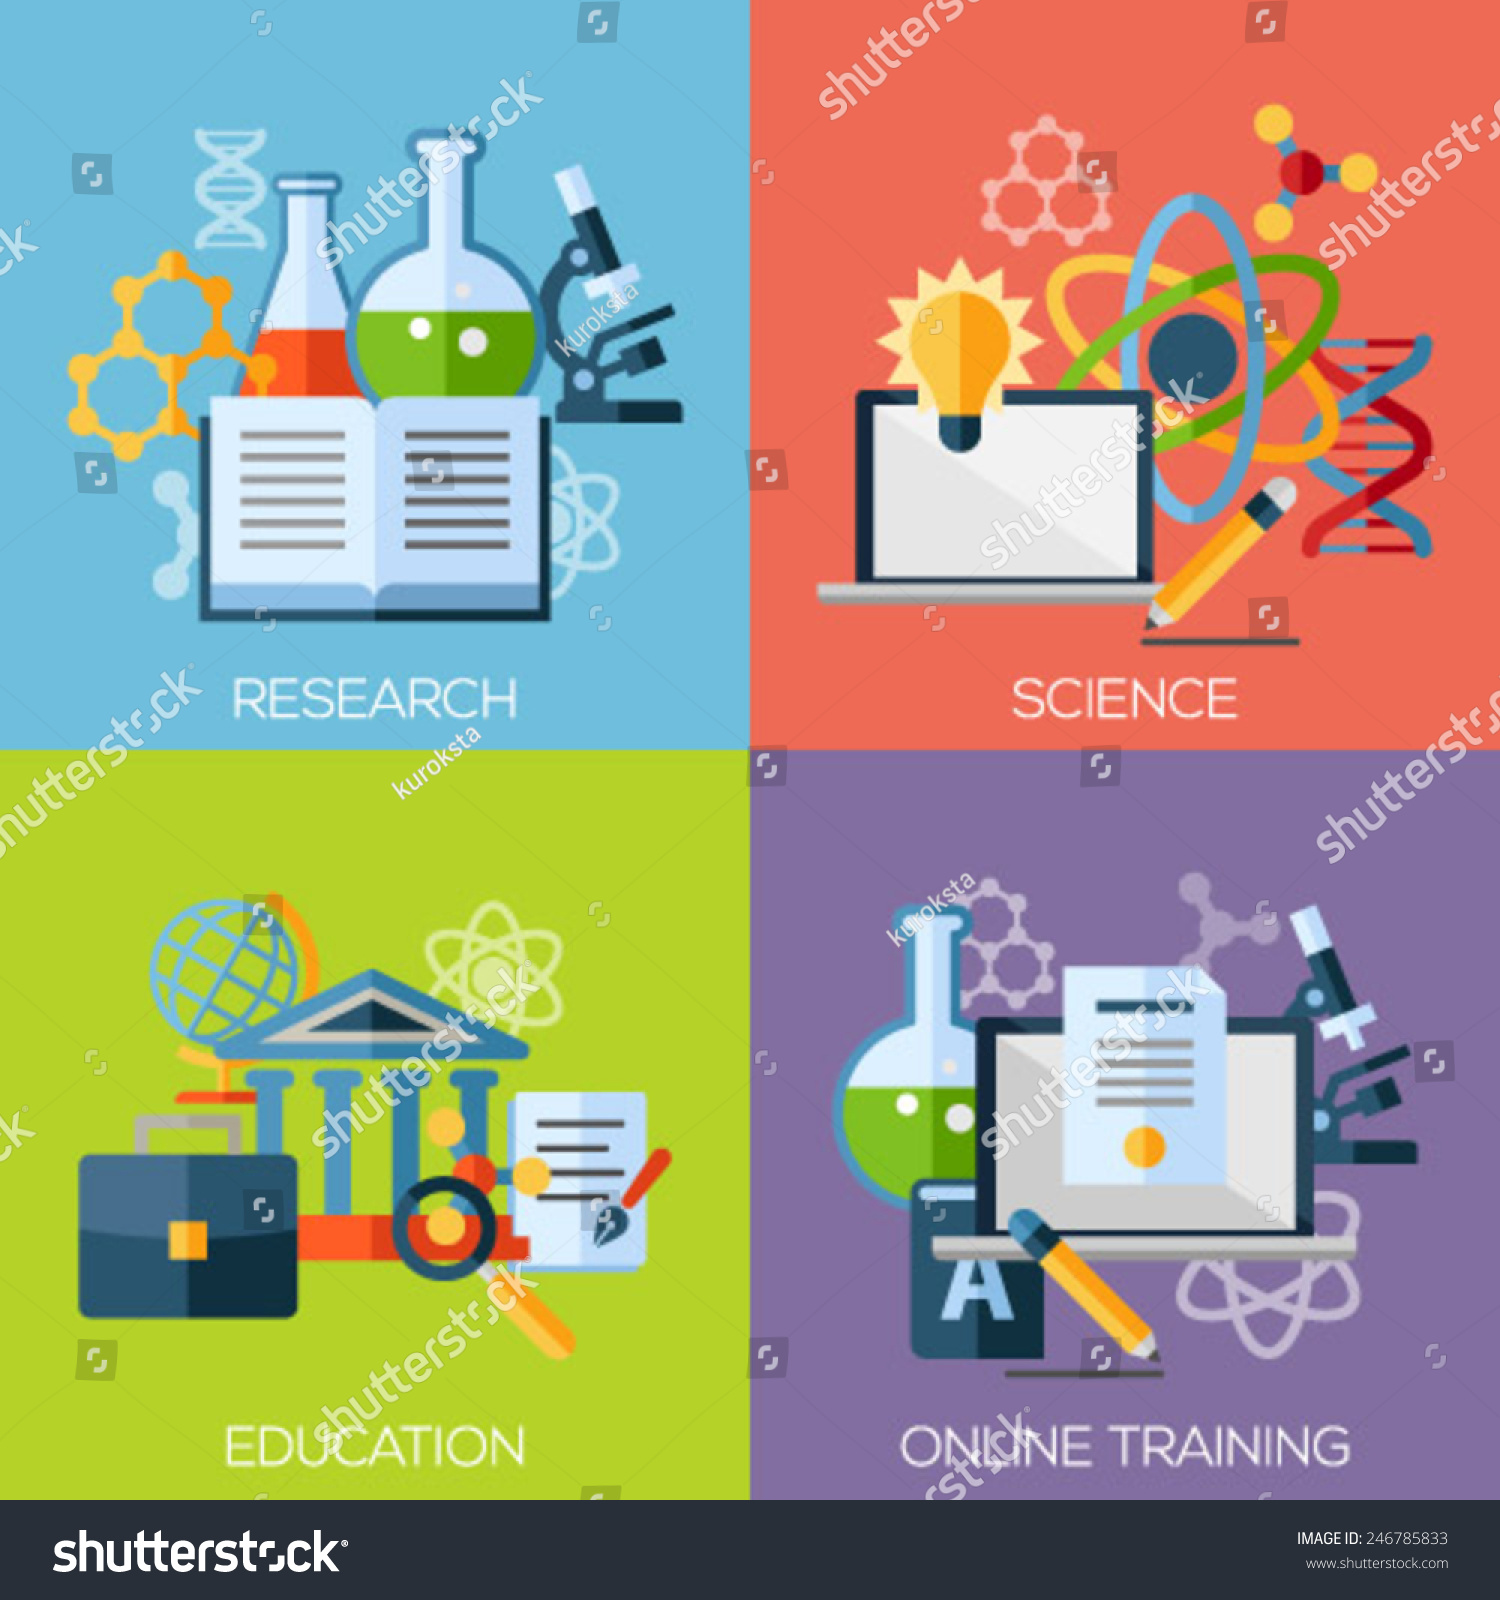 flat design concepts for research science education online training concepts for web graphic designer education - Fashion Designer Education And Training